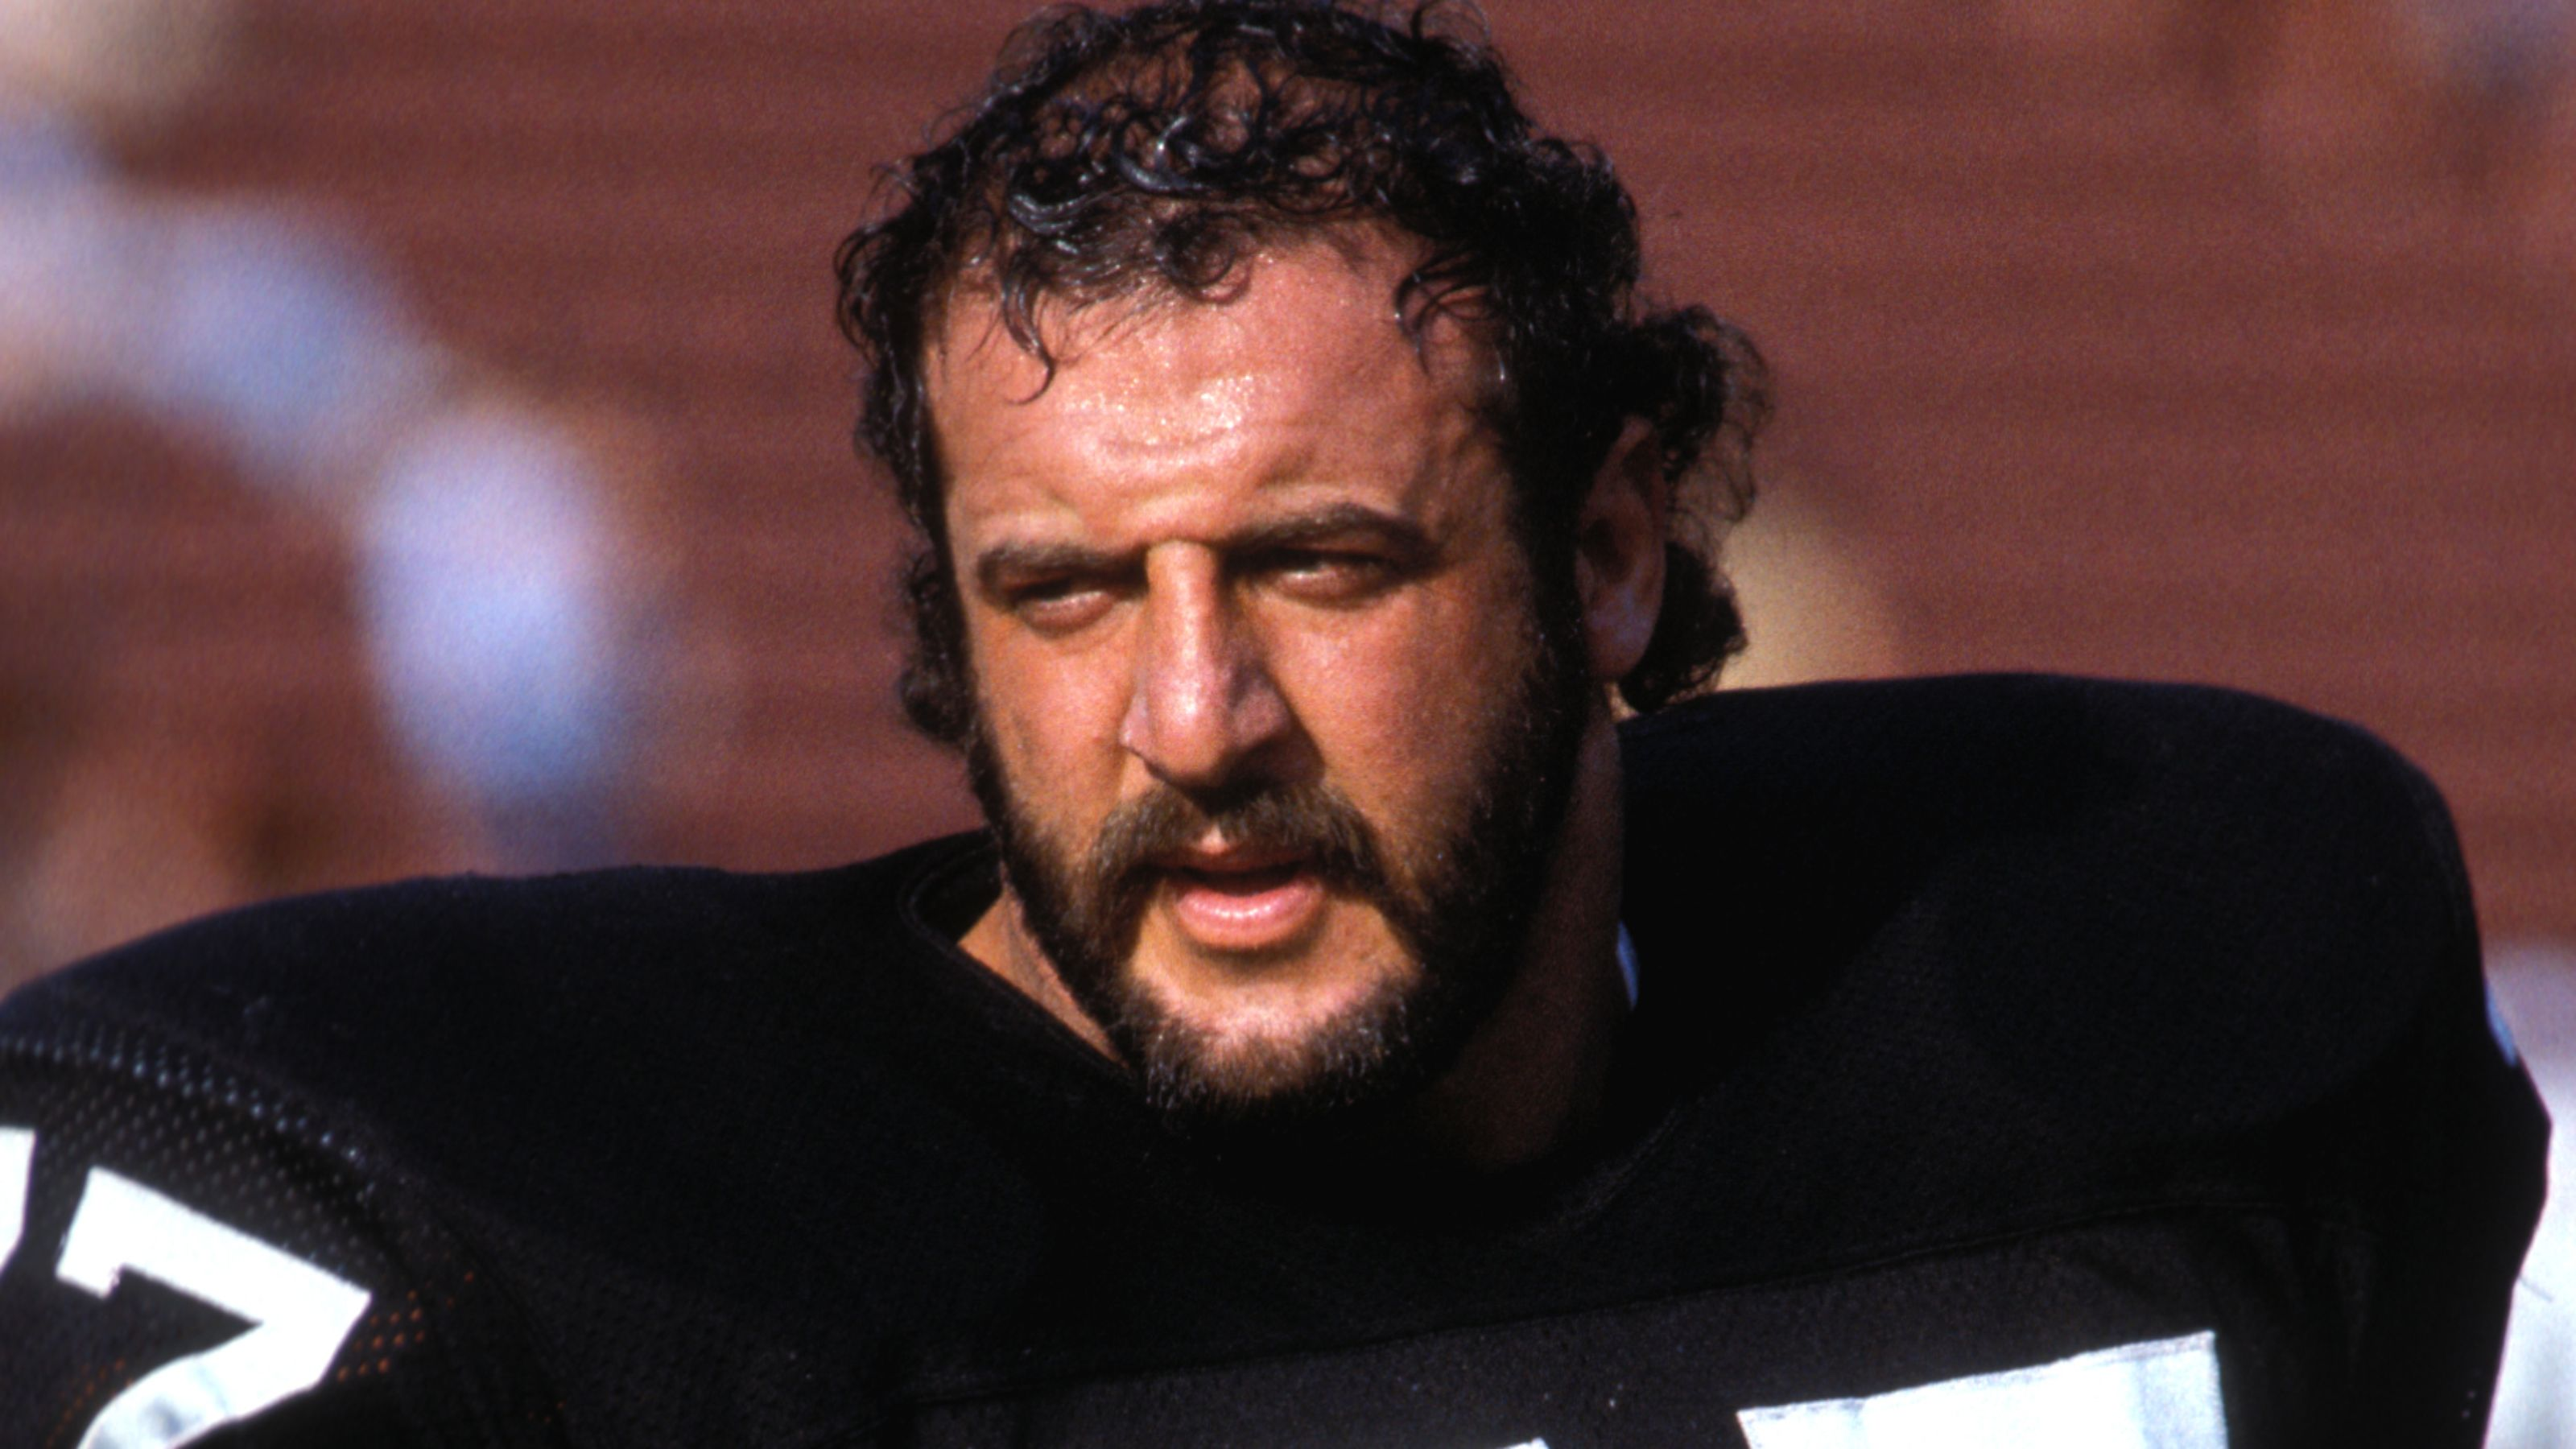 The Darth Raider: la storia di Lyle Alzado